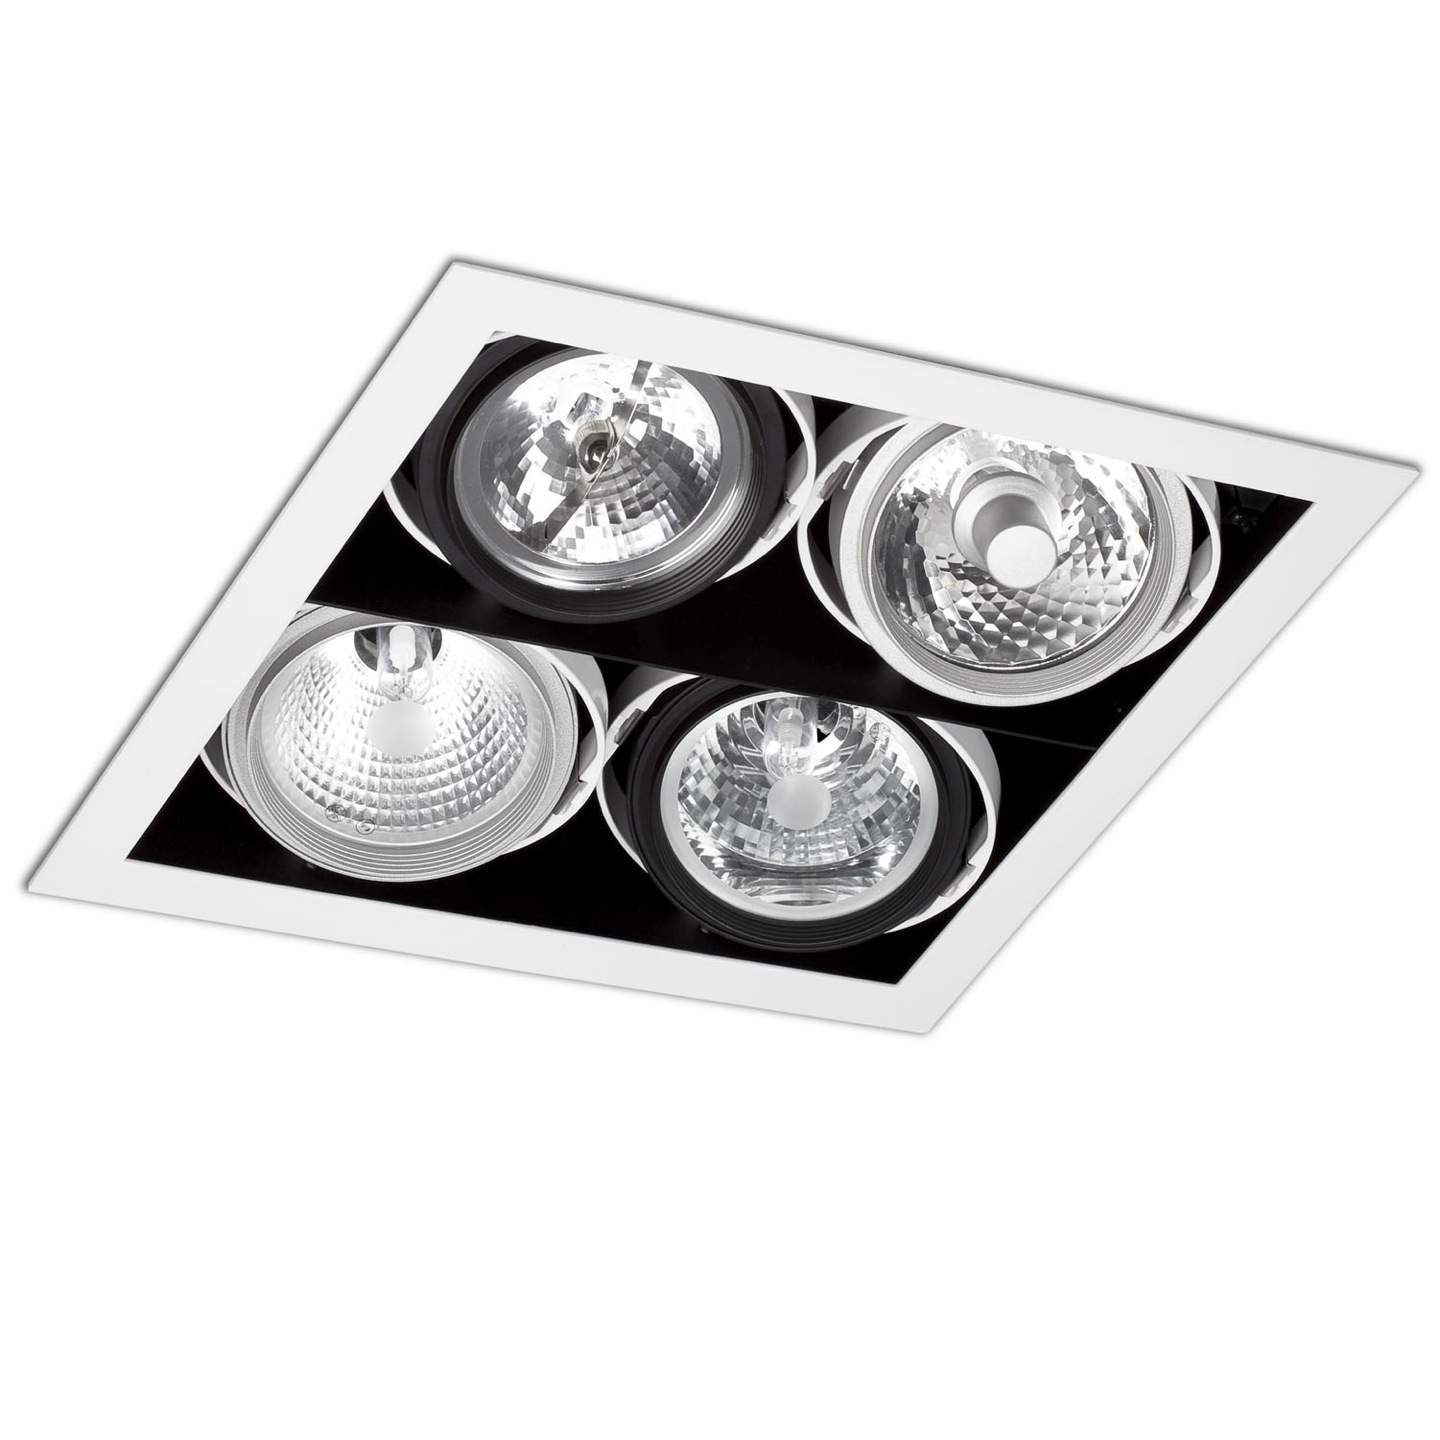 Morris Recessed Ceiling (body without PortaLámpara s) 4xElements Grey